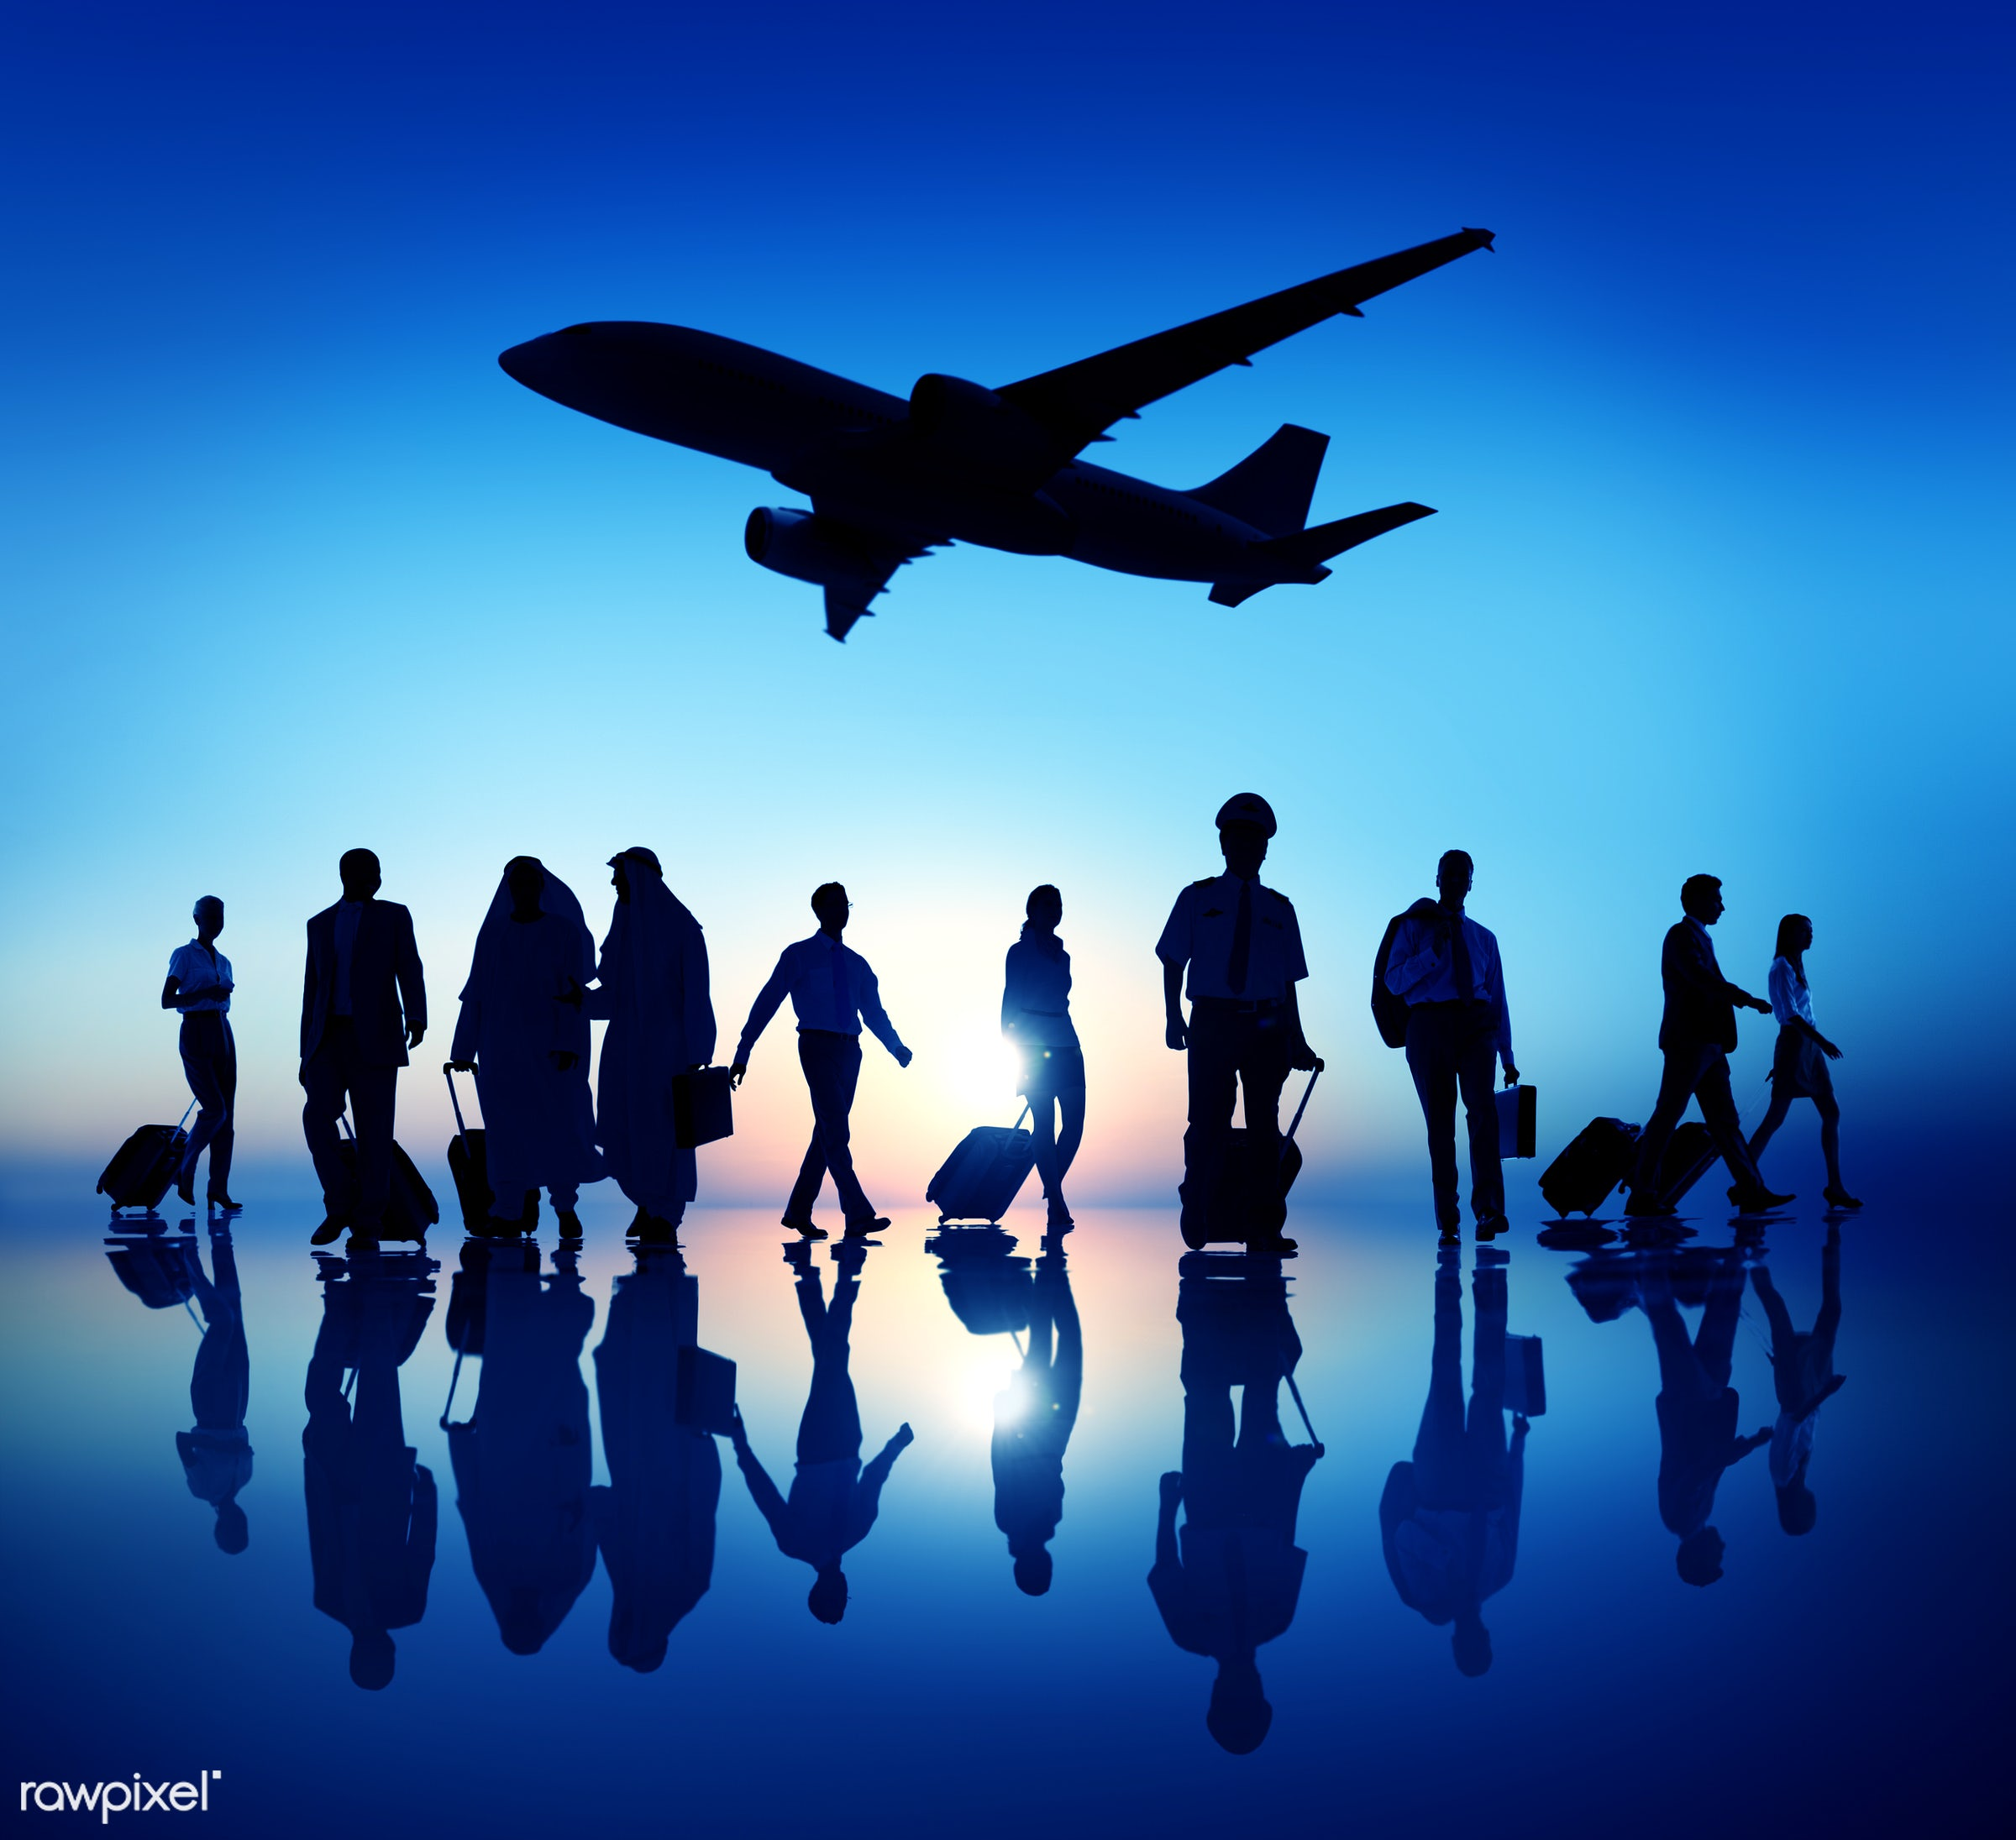 3d, airline, airplane, back lit, blue, business, business people, business travel, businessmen, businesswomen, corporate,...